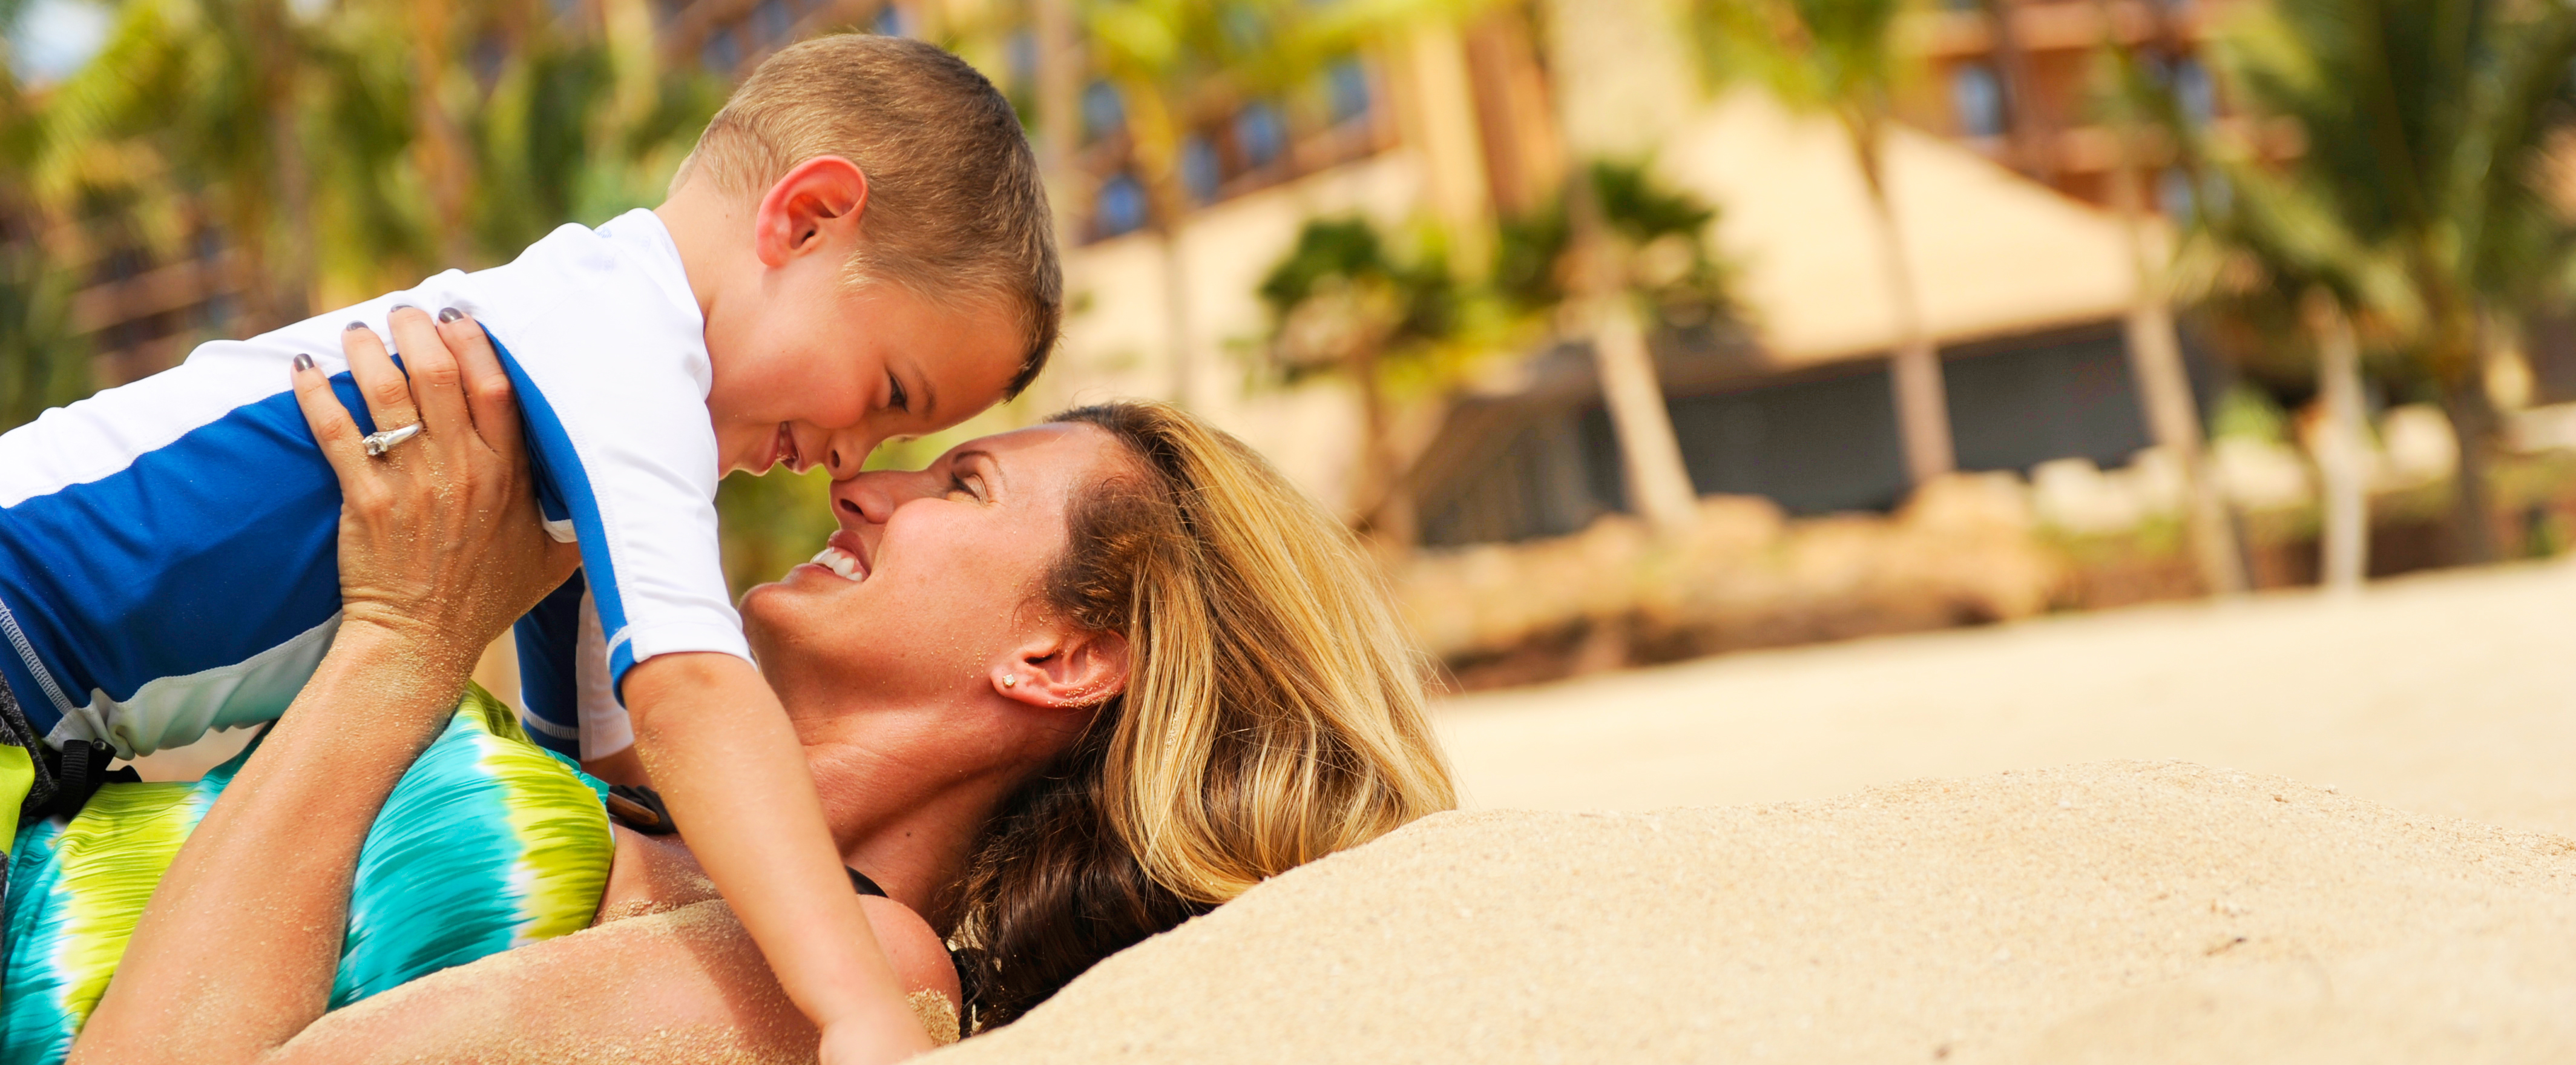 A mom plays with her son at the beach